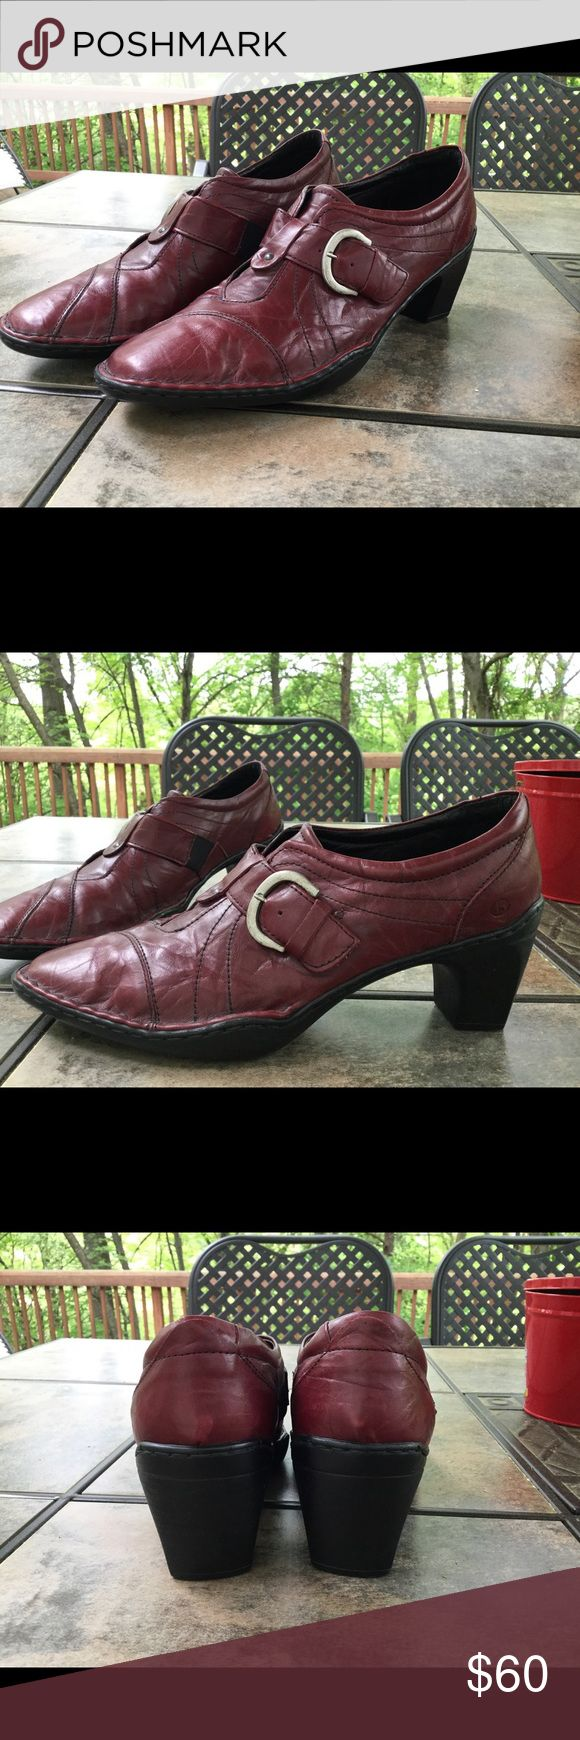 Joseph Seibel Calla 03 Bootie Size 40 (us 9) Gorgeous dark red burgundy leather shoes. Size 40, in this case equivalent to a US size 9 (my typical size). This brand is known in Europe for its comfort. Pointed toe, 2 1/4 inch heel. Excellent used condition from non smoking home. Josef Seibel Shoes Heels